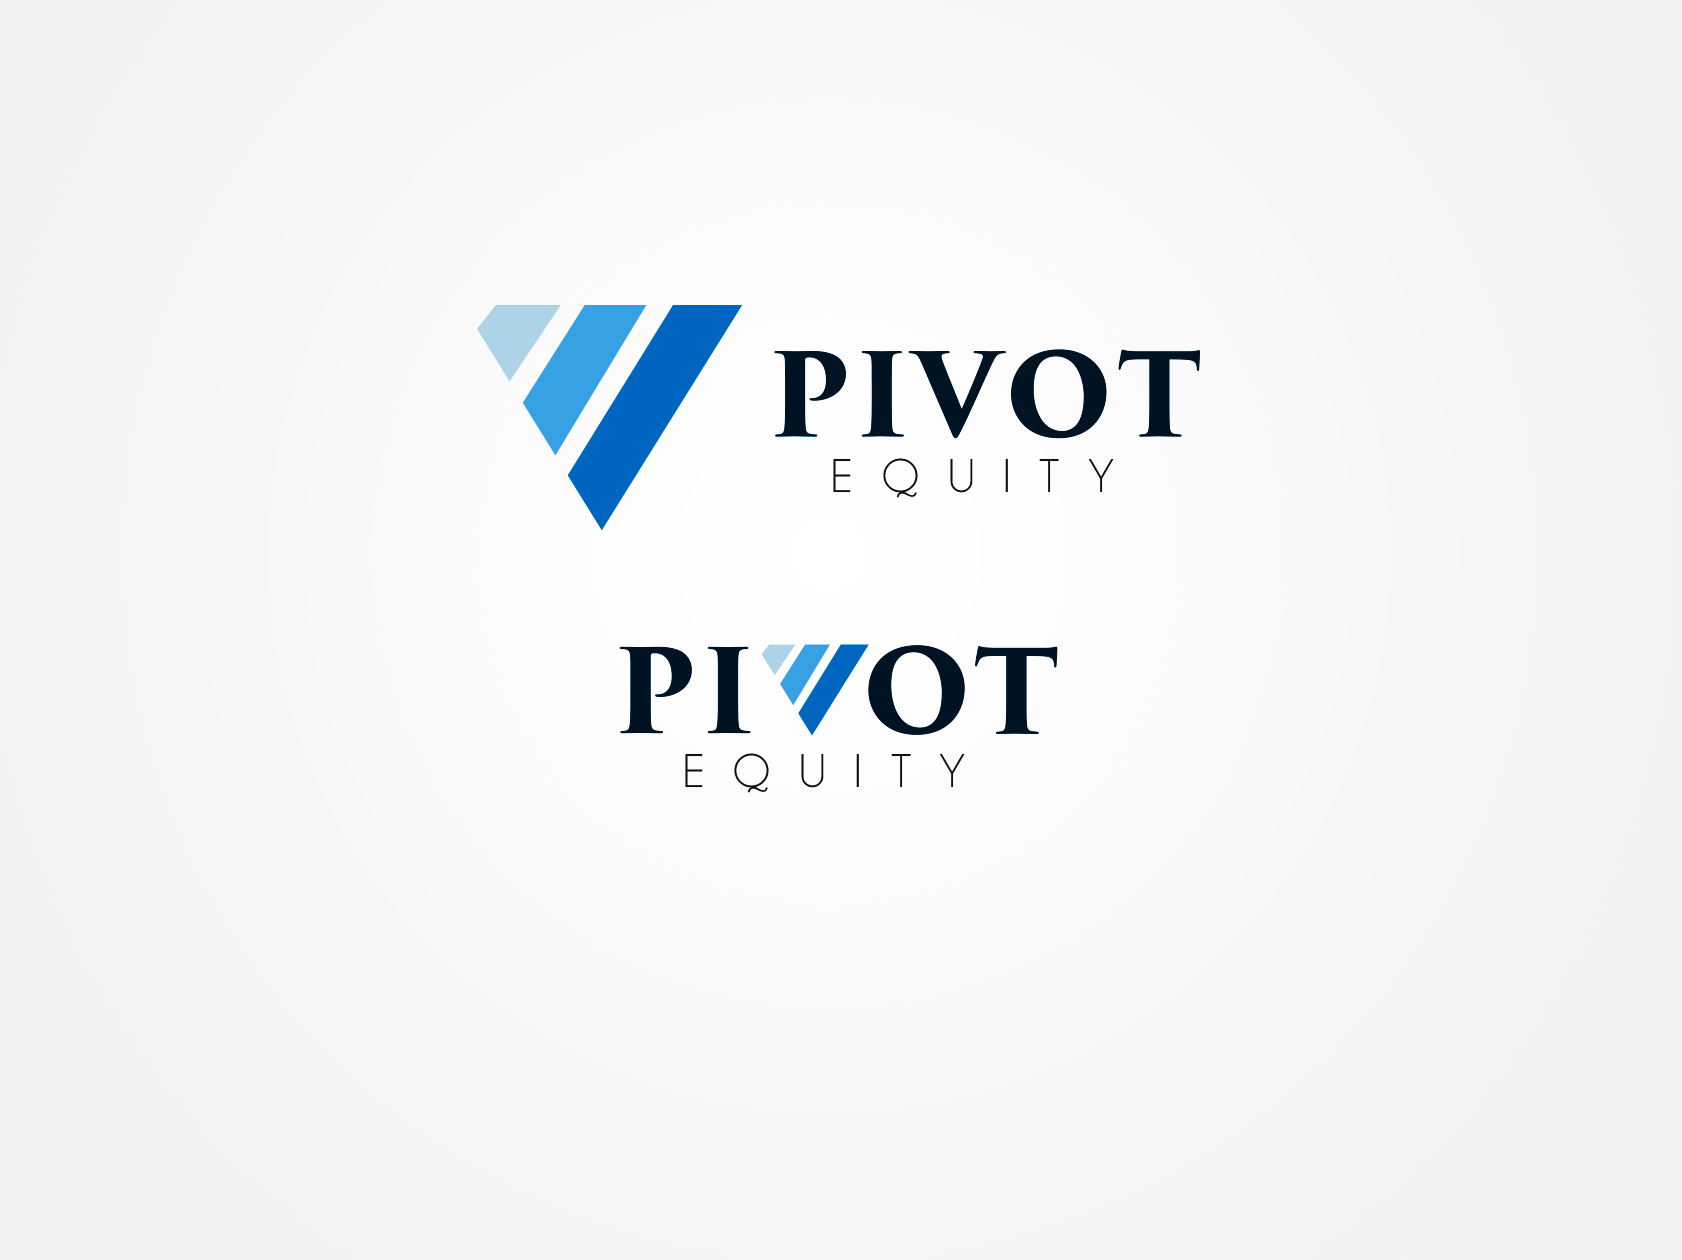 Logo Design by OmegaDesigns - Entry No. 85 in the Logo Design Contest Unique Logo Design Wanted for Pivot Equity Advisors.